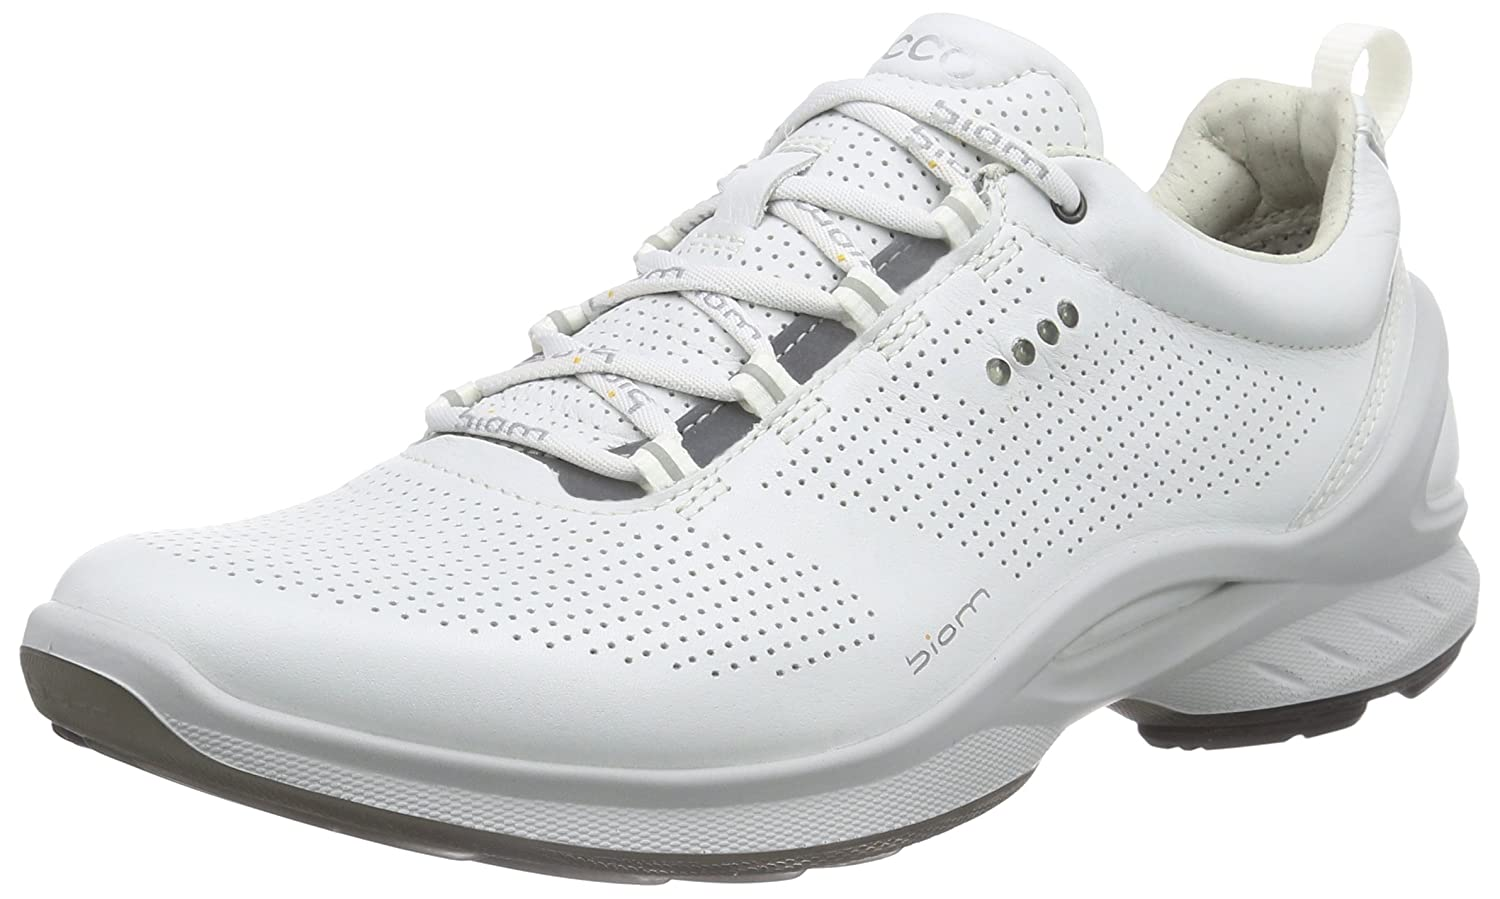 ECCO Women's Biom Fjuel Train Oxford B00VJ5DK0W 38 EU/7-7.5 M US|White